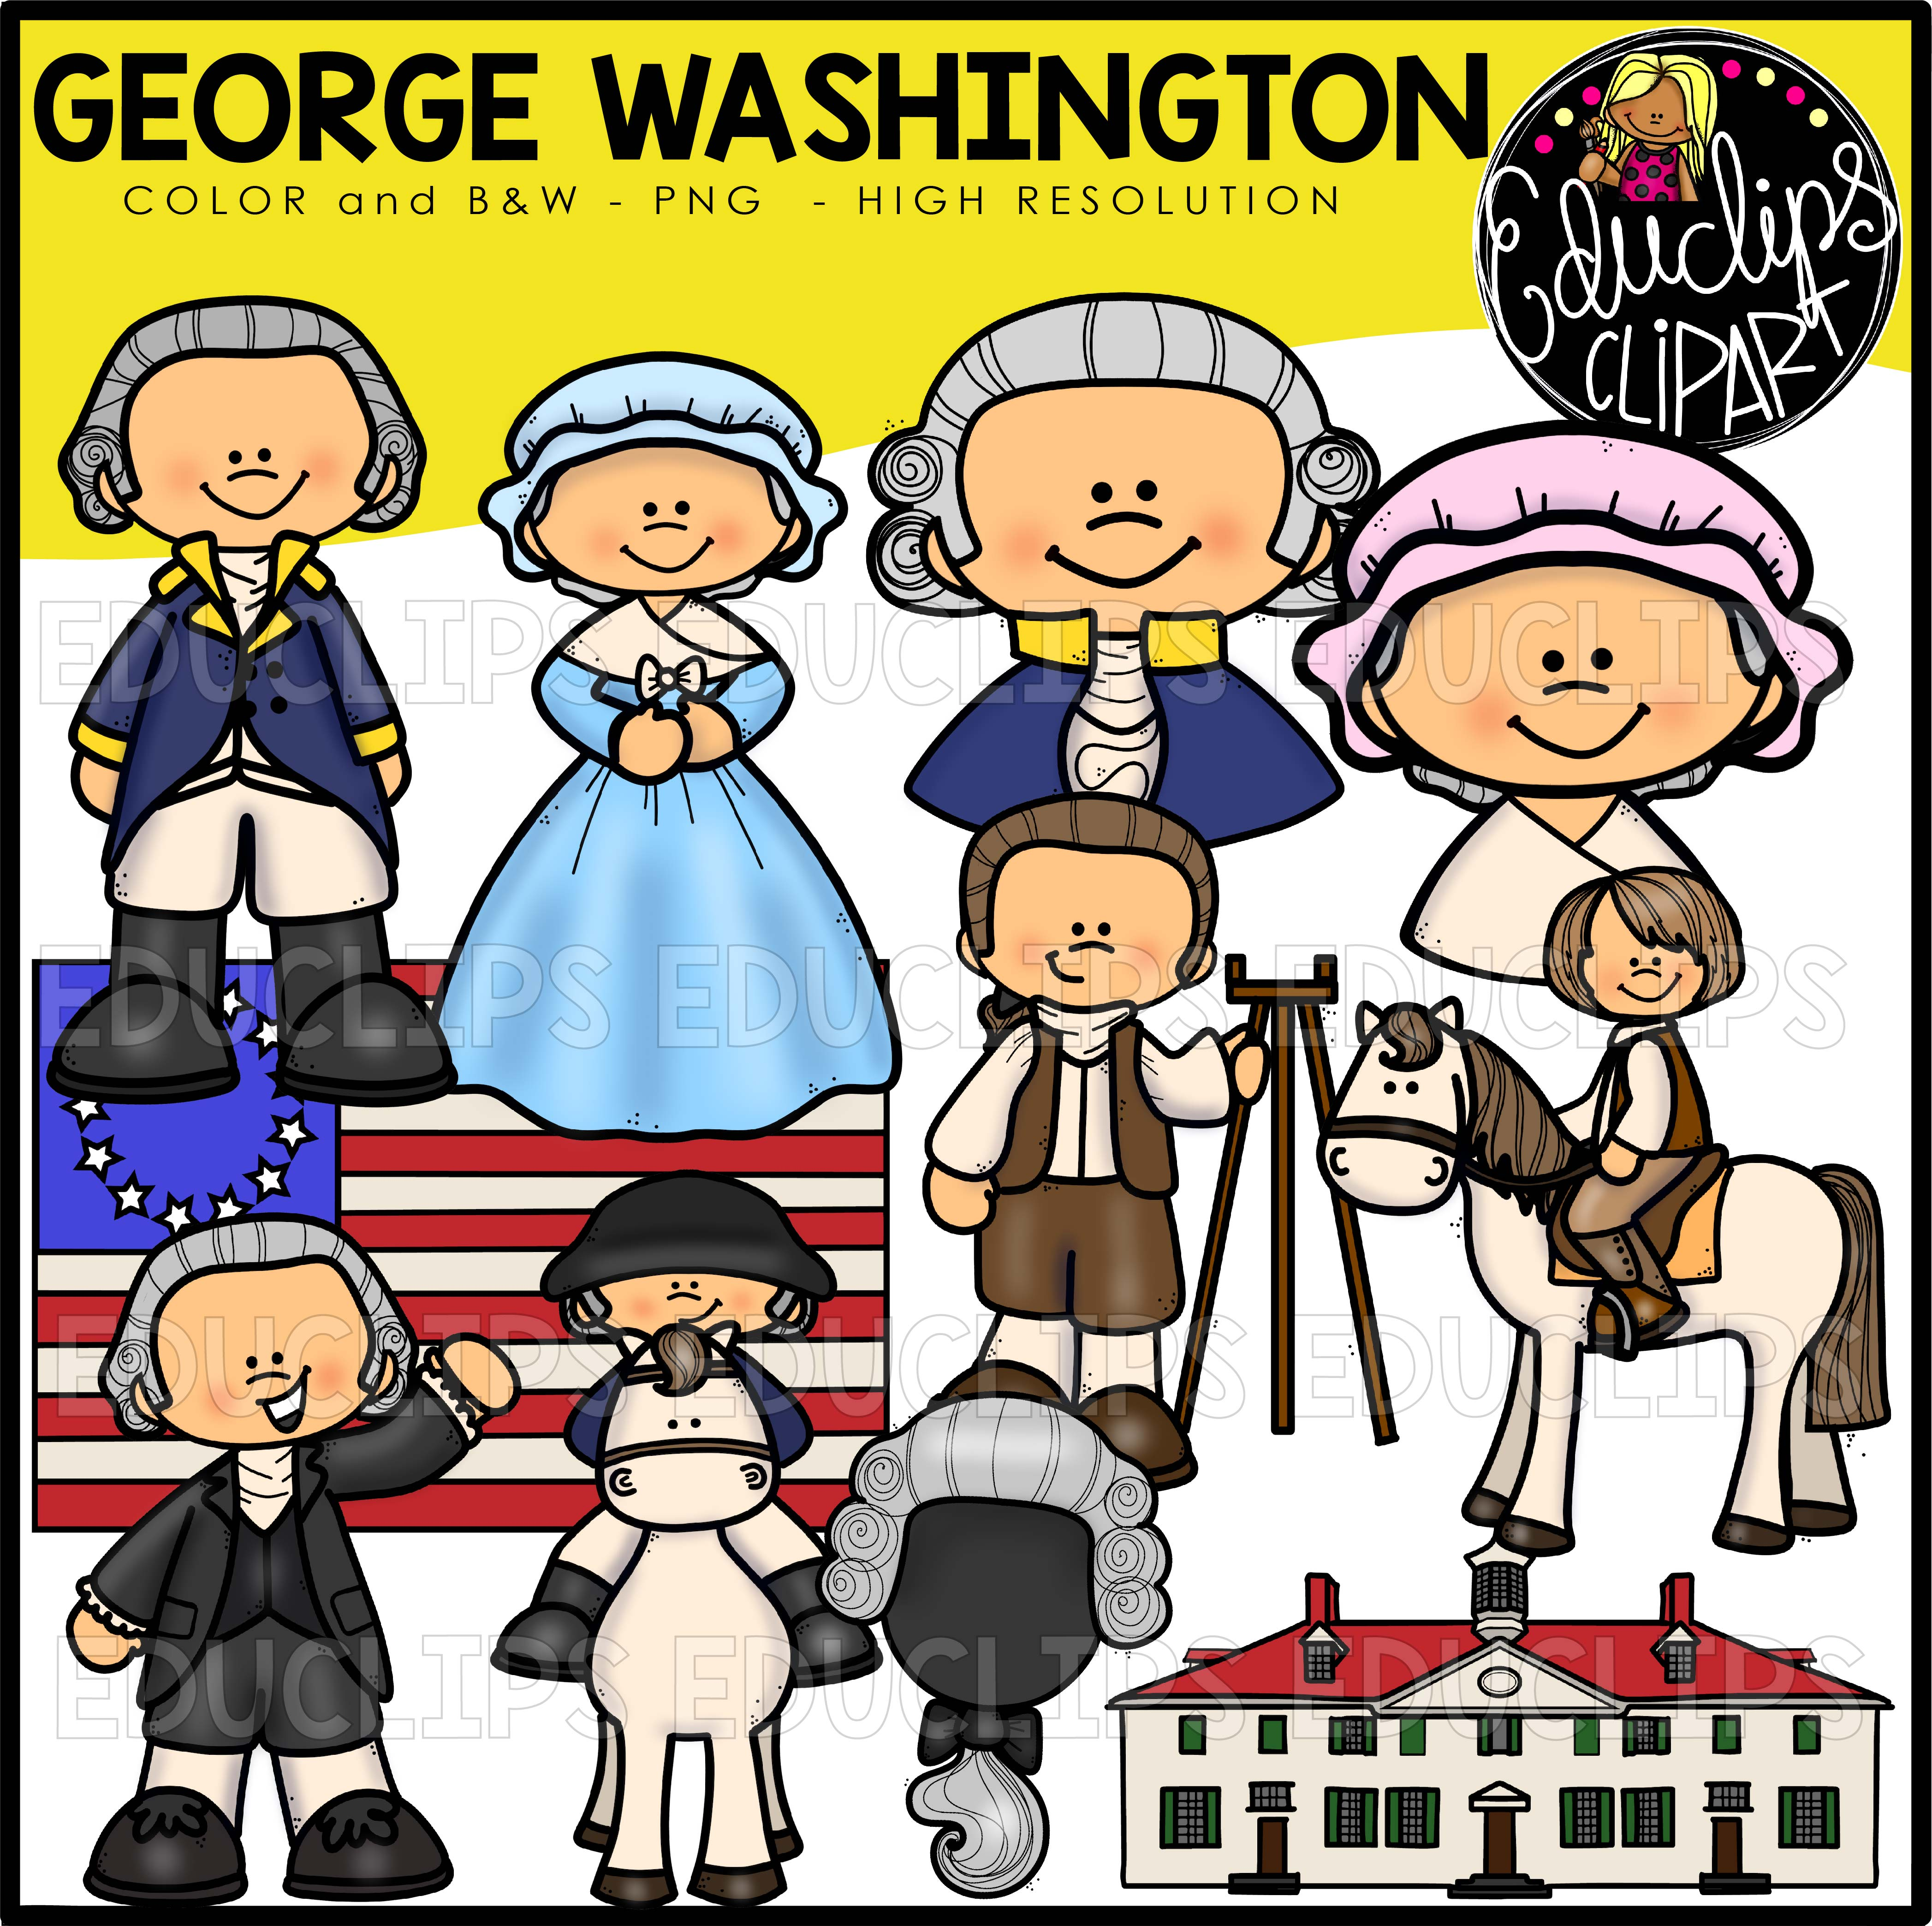 George Washington Clip Art Bundle (Color and B&W) - Welcome to ...